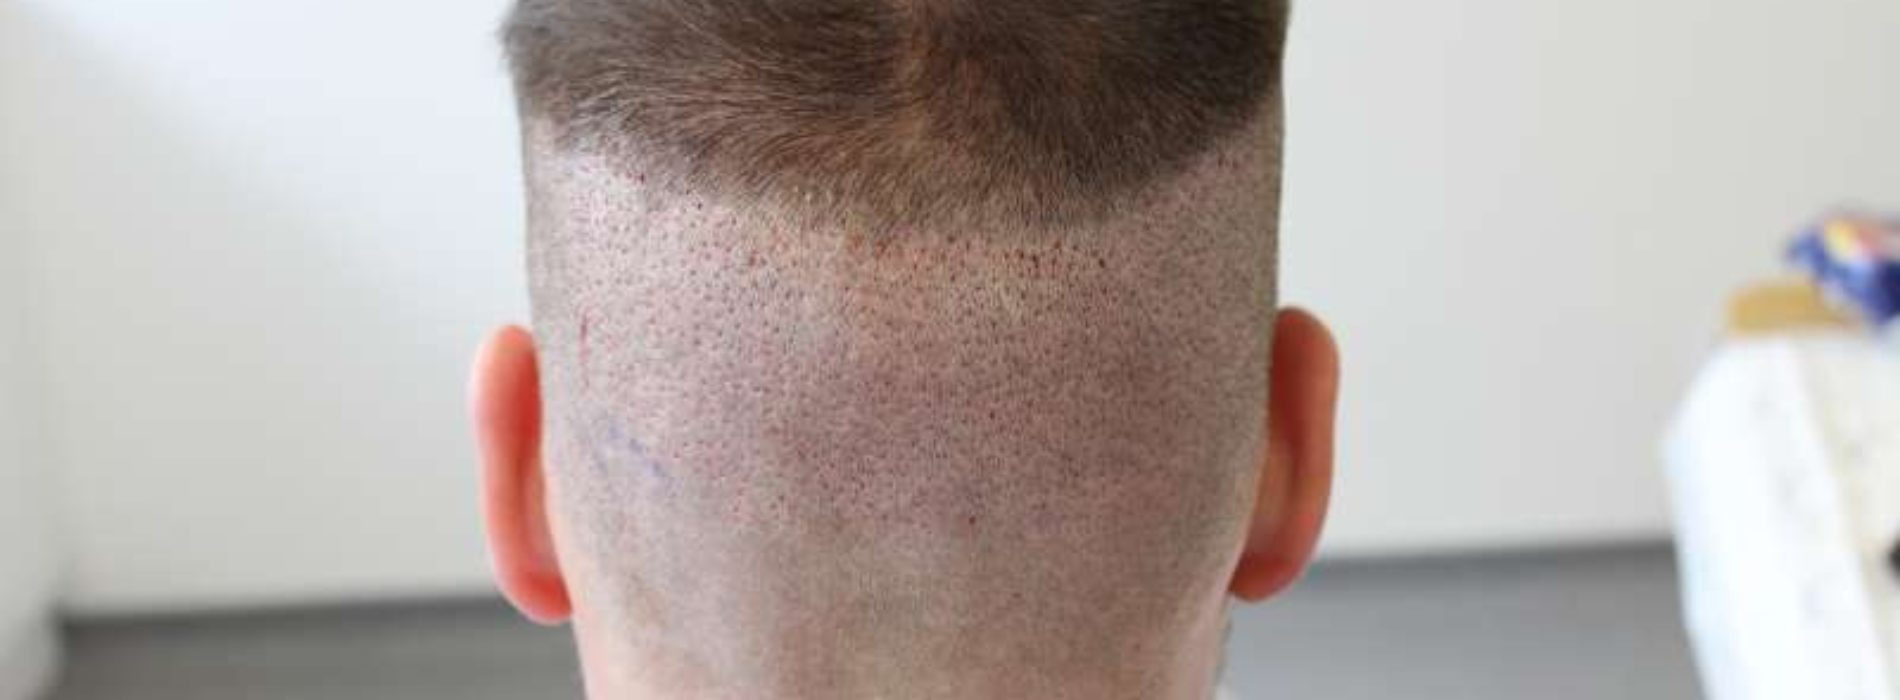 How to Preserve the Safe Donor Area in the Hair Transplants